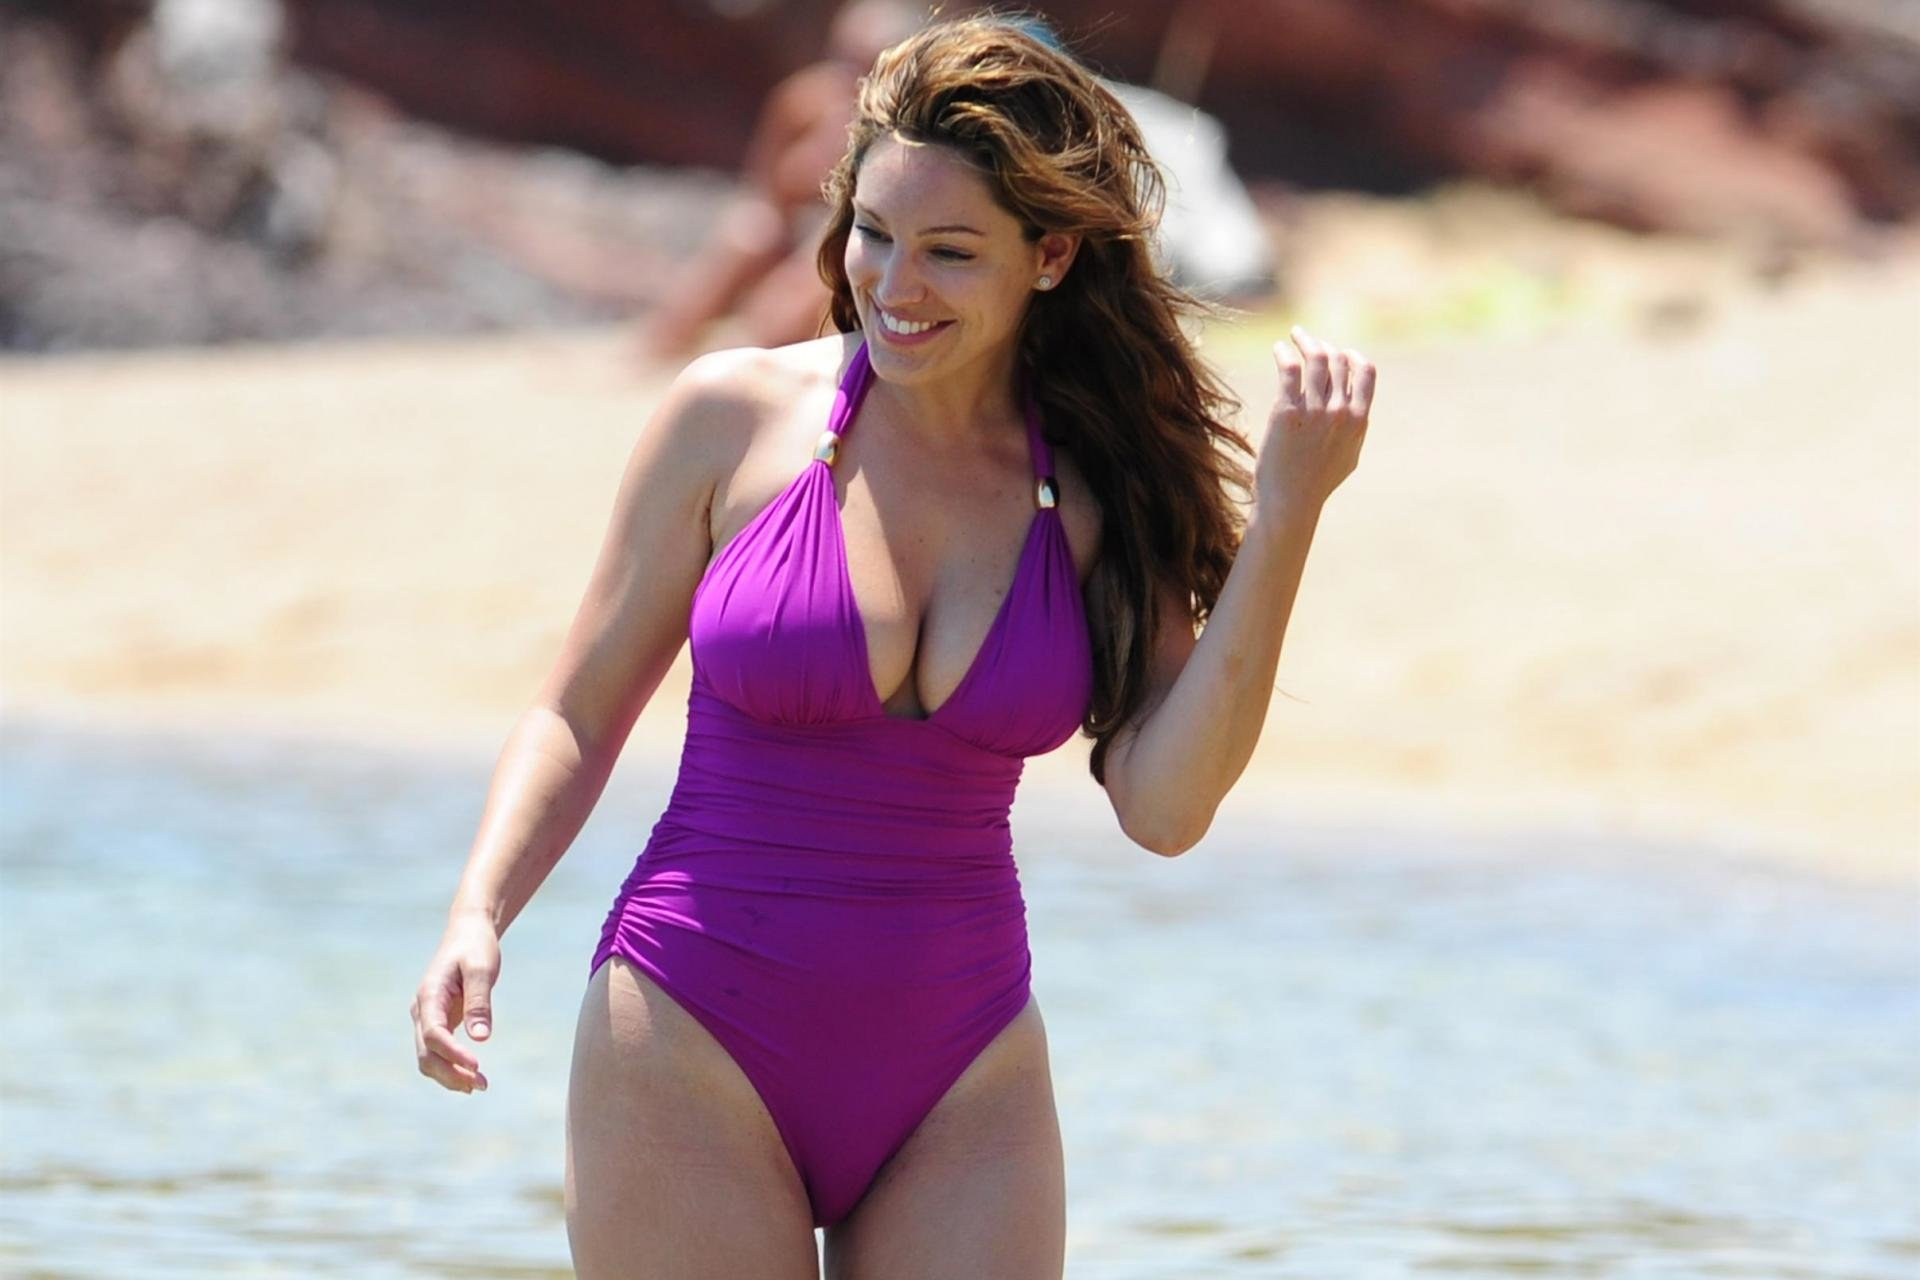 Free Kelly Brook high quality wallpaper ID:92219 for hd 1920x1280 desktop